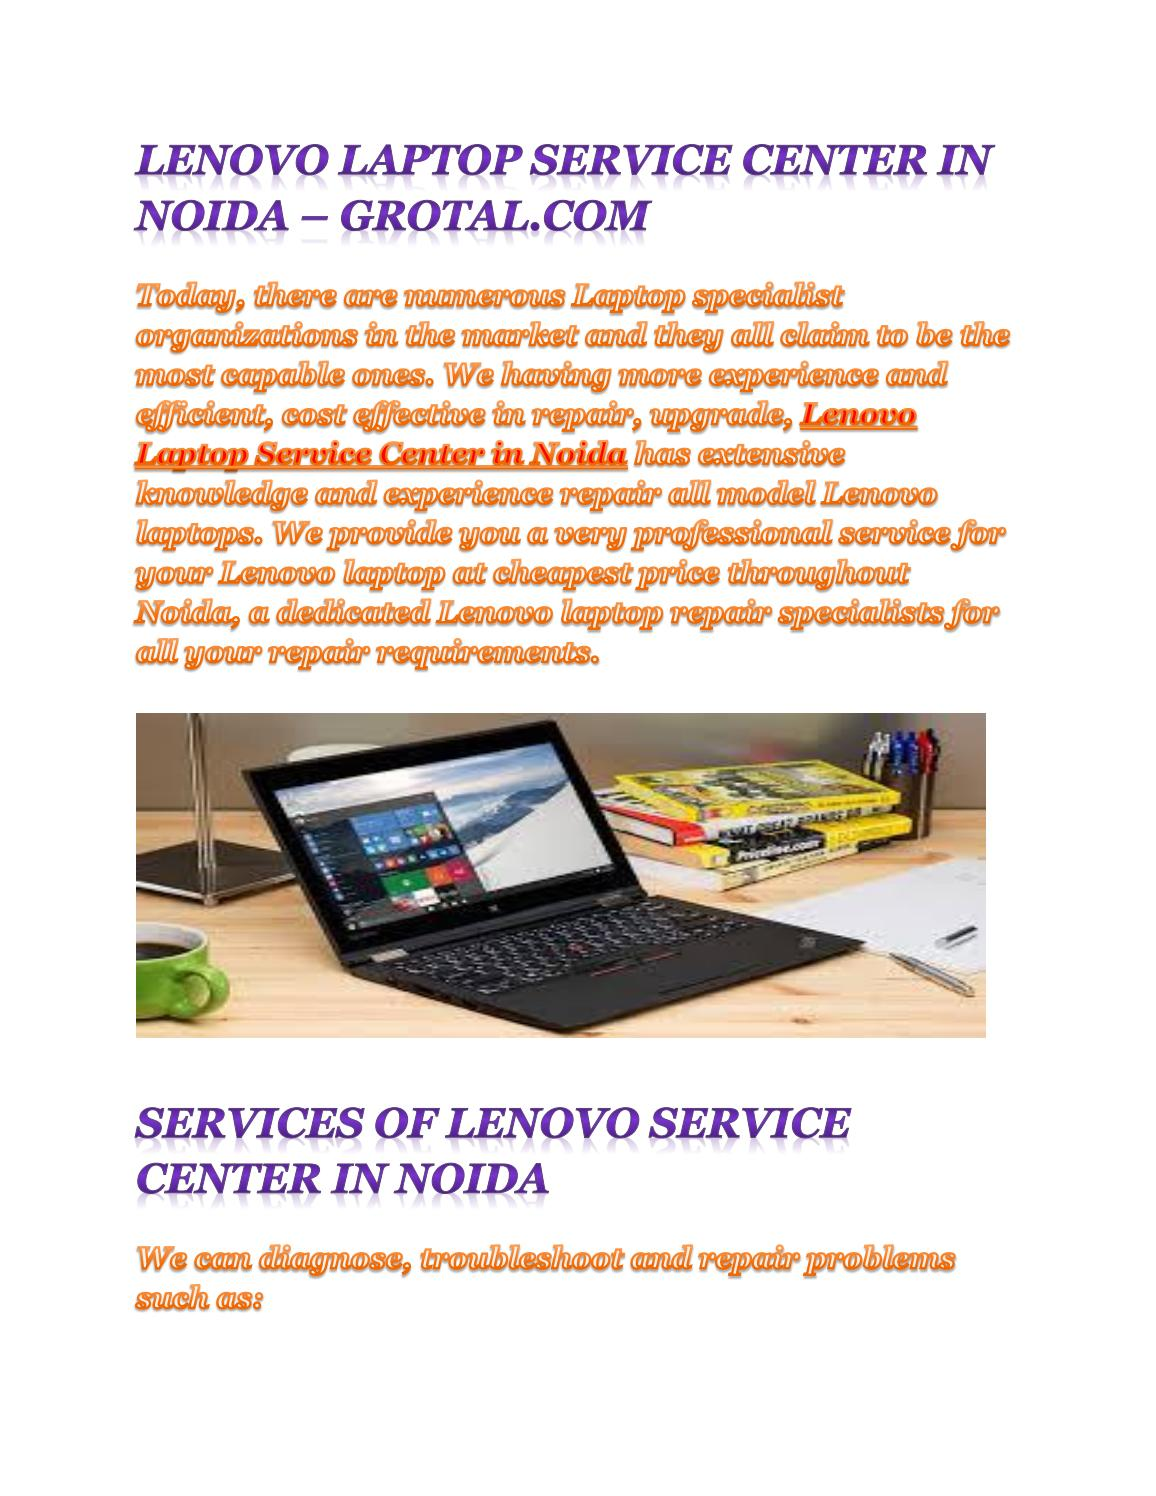 Lenovo service center in noida by Grotal - issuu